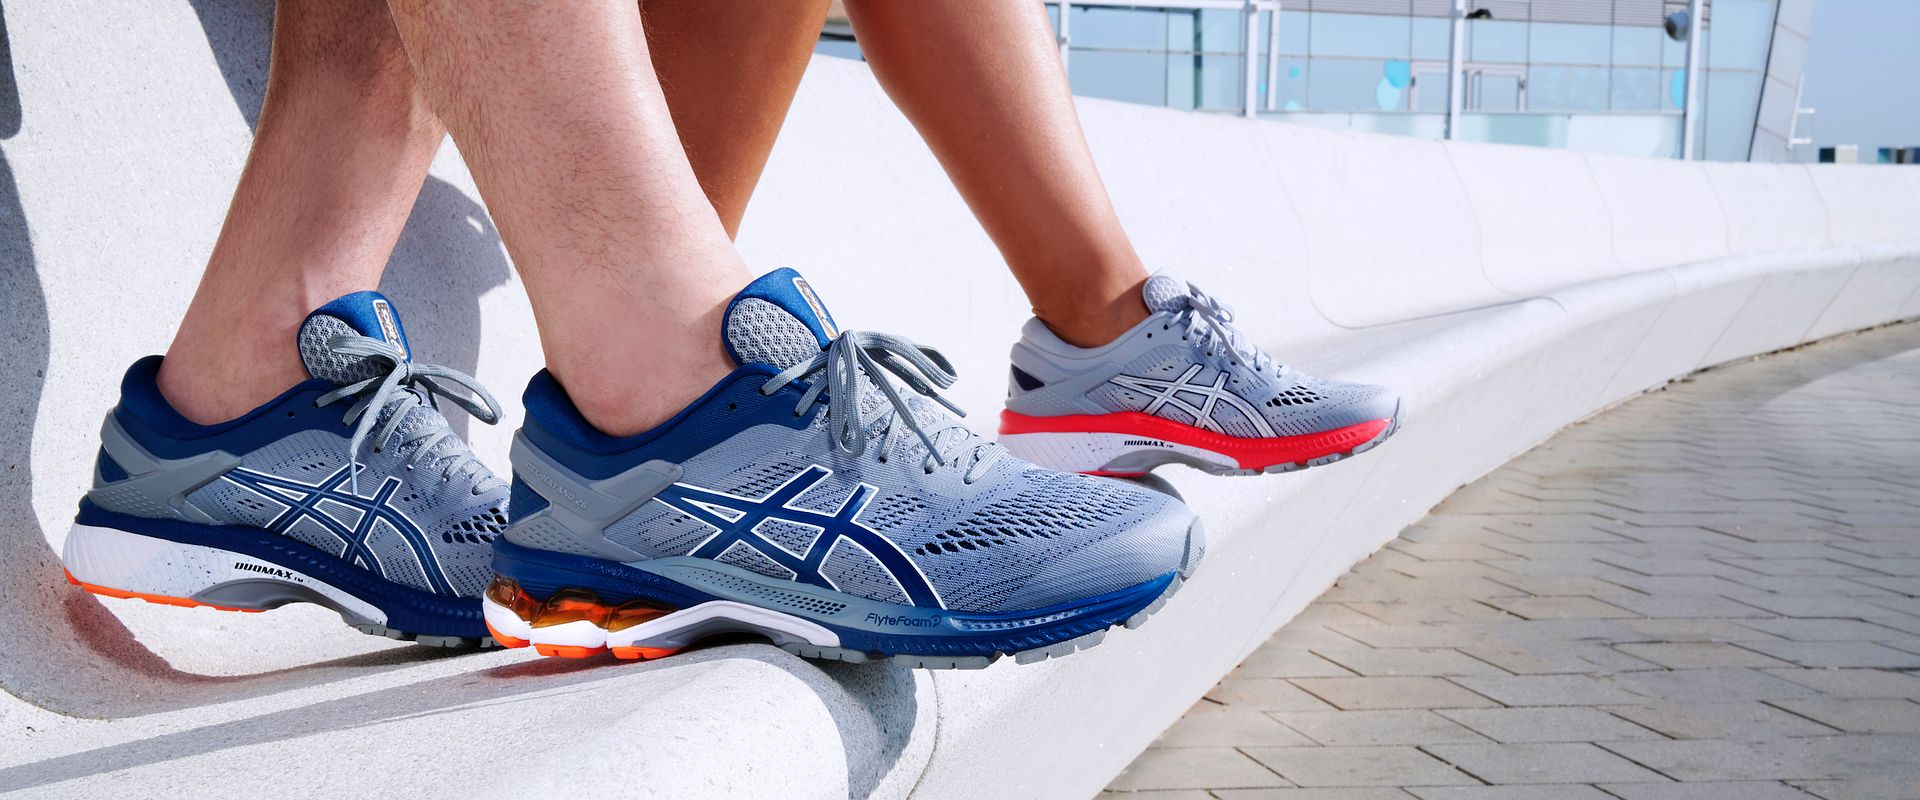 Shoe Review: ASICS GEL-Kayano 26 | Fleet Feet